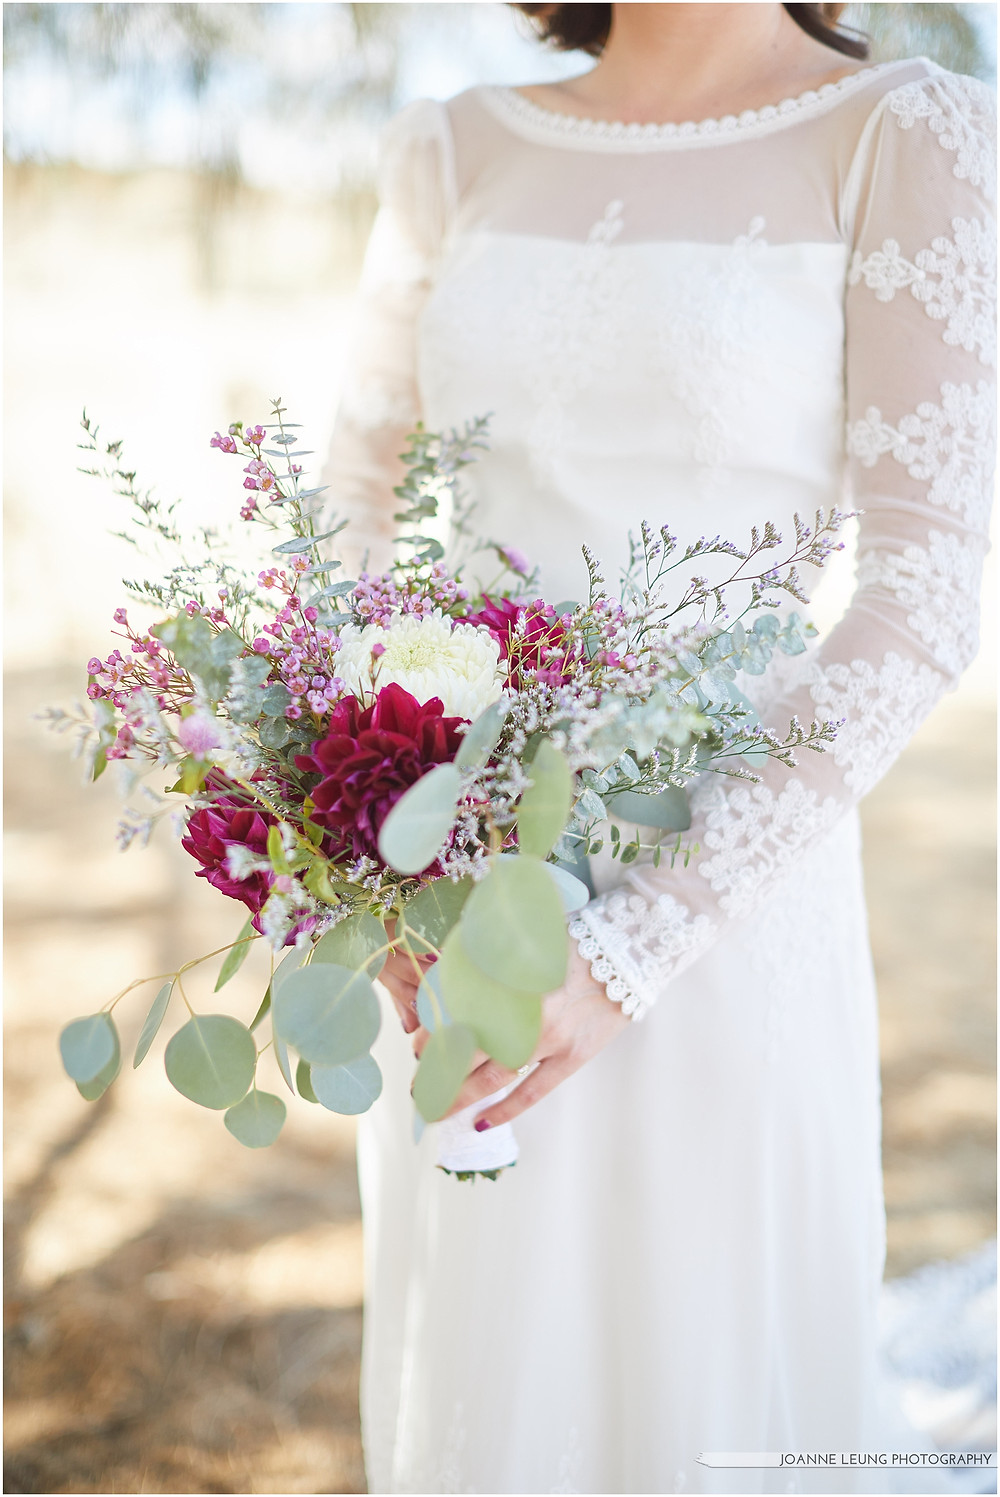 Joshua Tree Live Oak Wedding beautiful backless lace wedding dress dahlia eucalyptus bridal bouquet